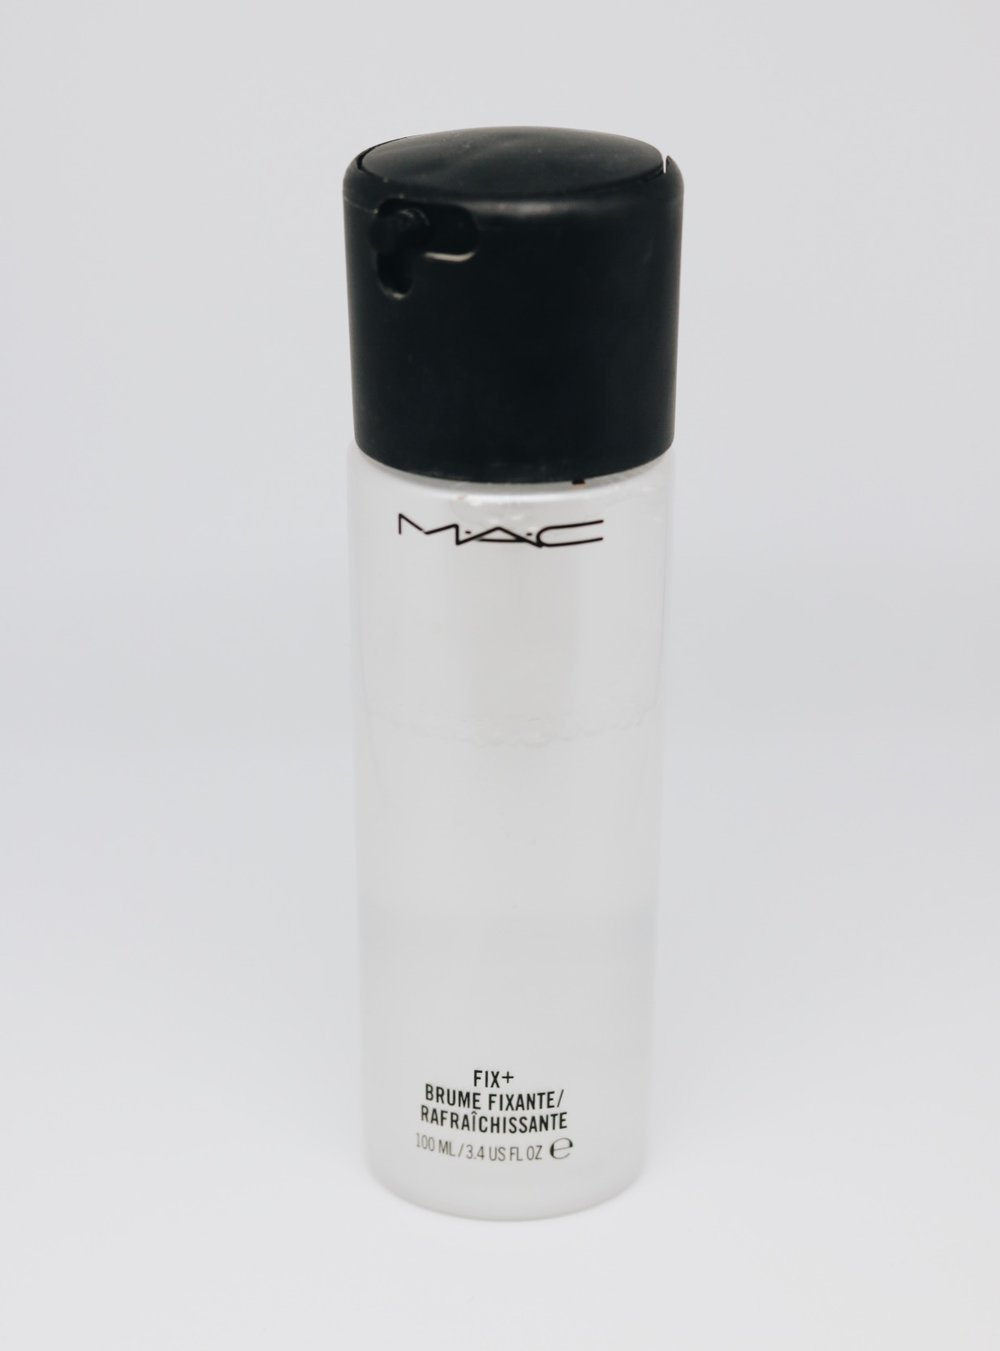 mac fix plus setting spray canadian beauty blogger brittany lauren brittany laurens saskatoon